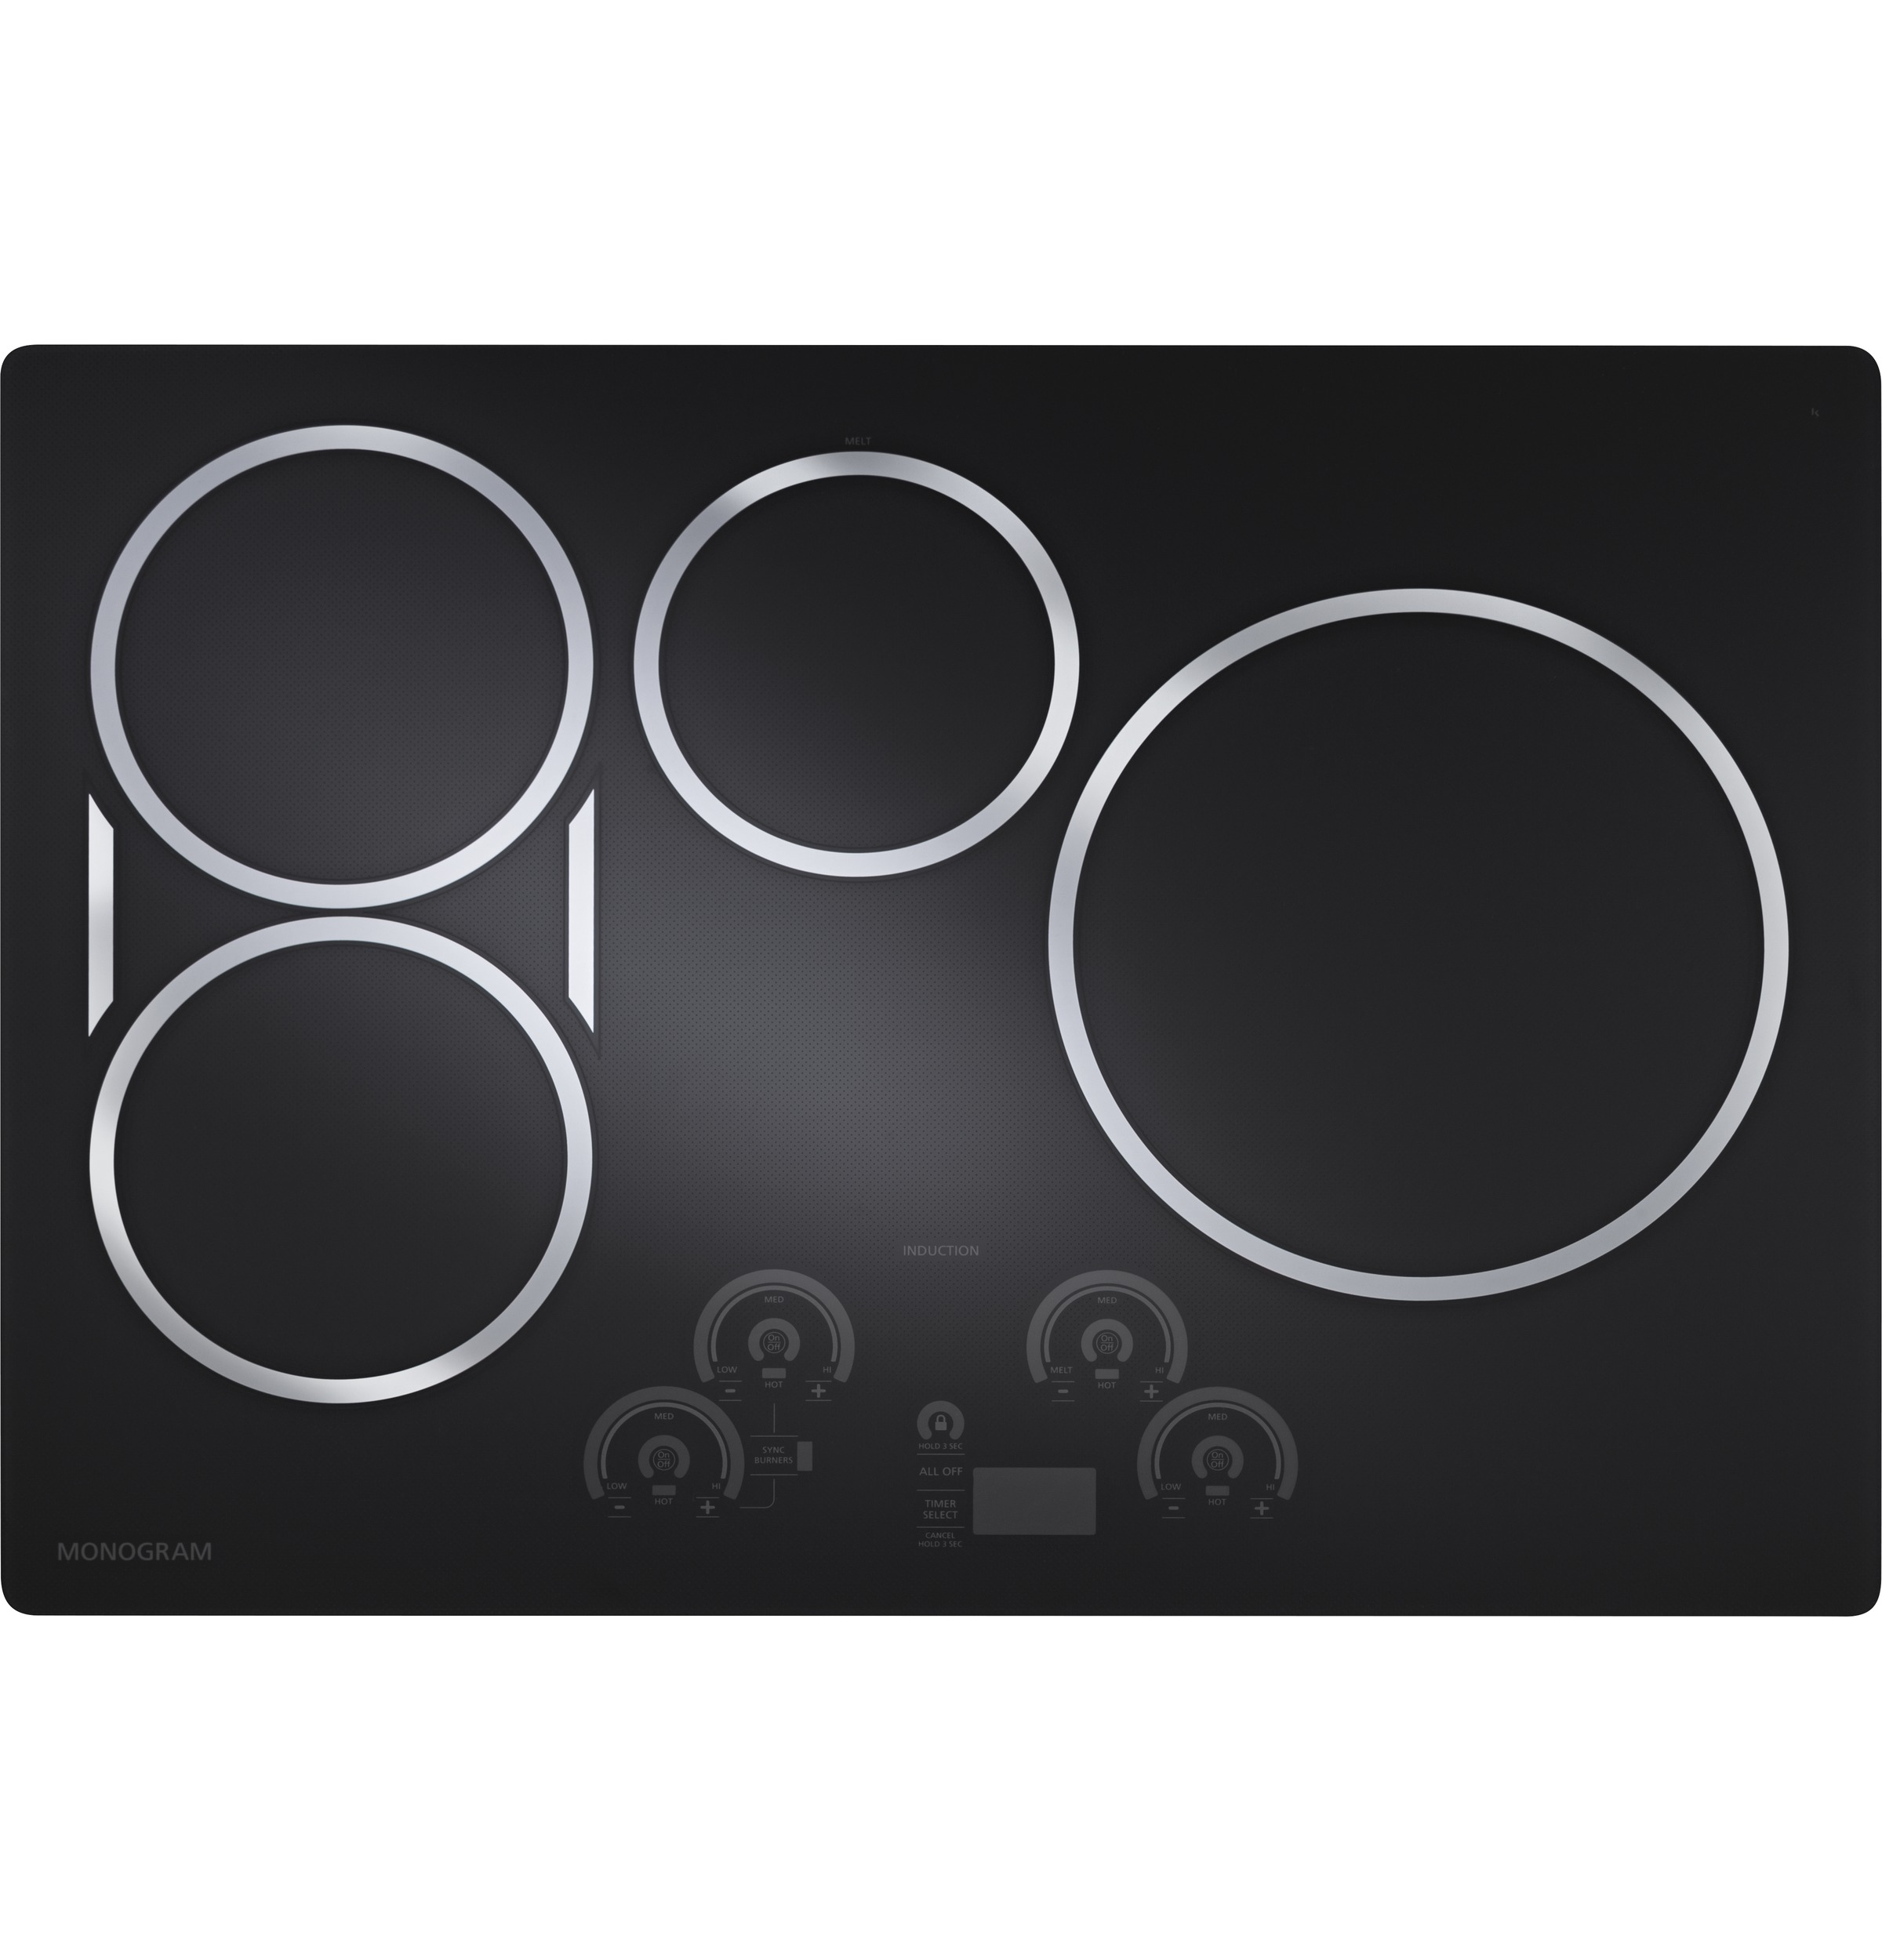 "Monogram Monogram 30"" Induction Cooktop"